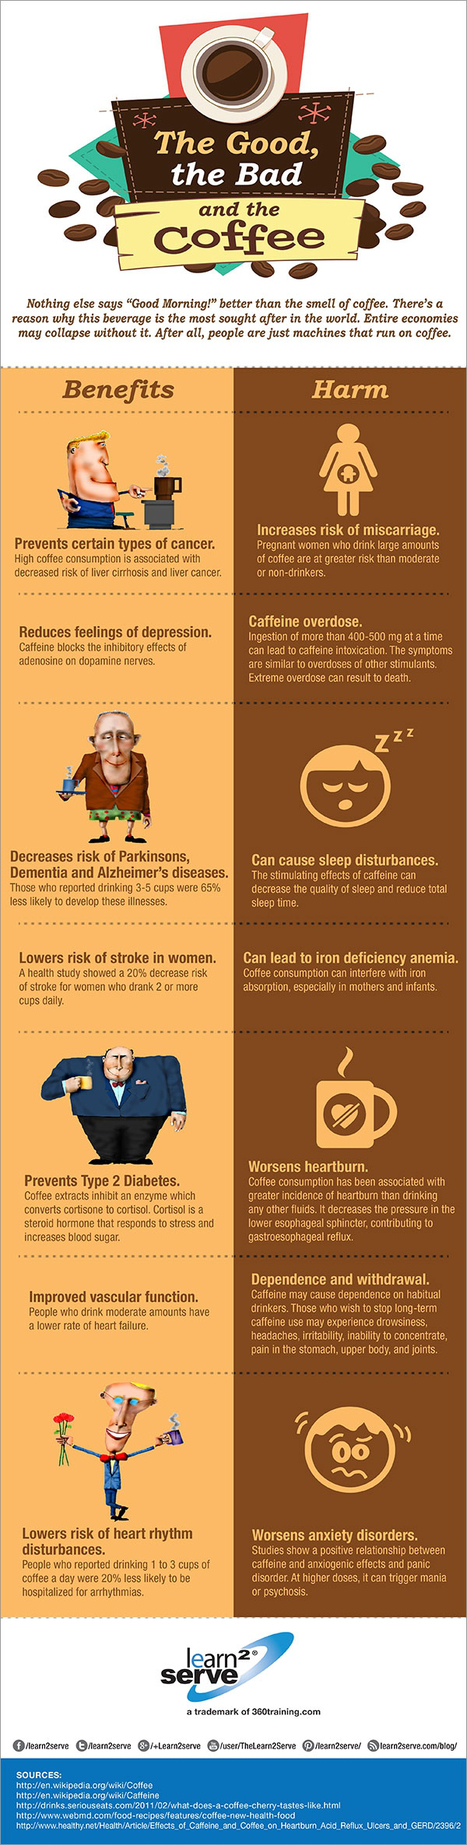 The Good, The Bad, And The Coffee [Infographic] | Perspectives on Health & Nursing | Scoop.it